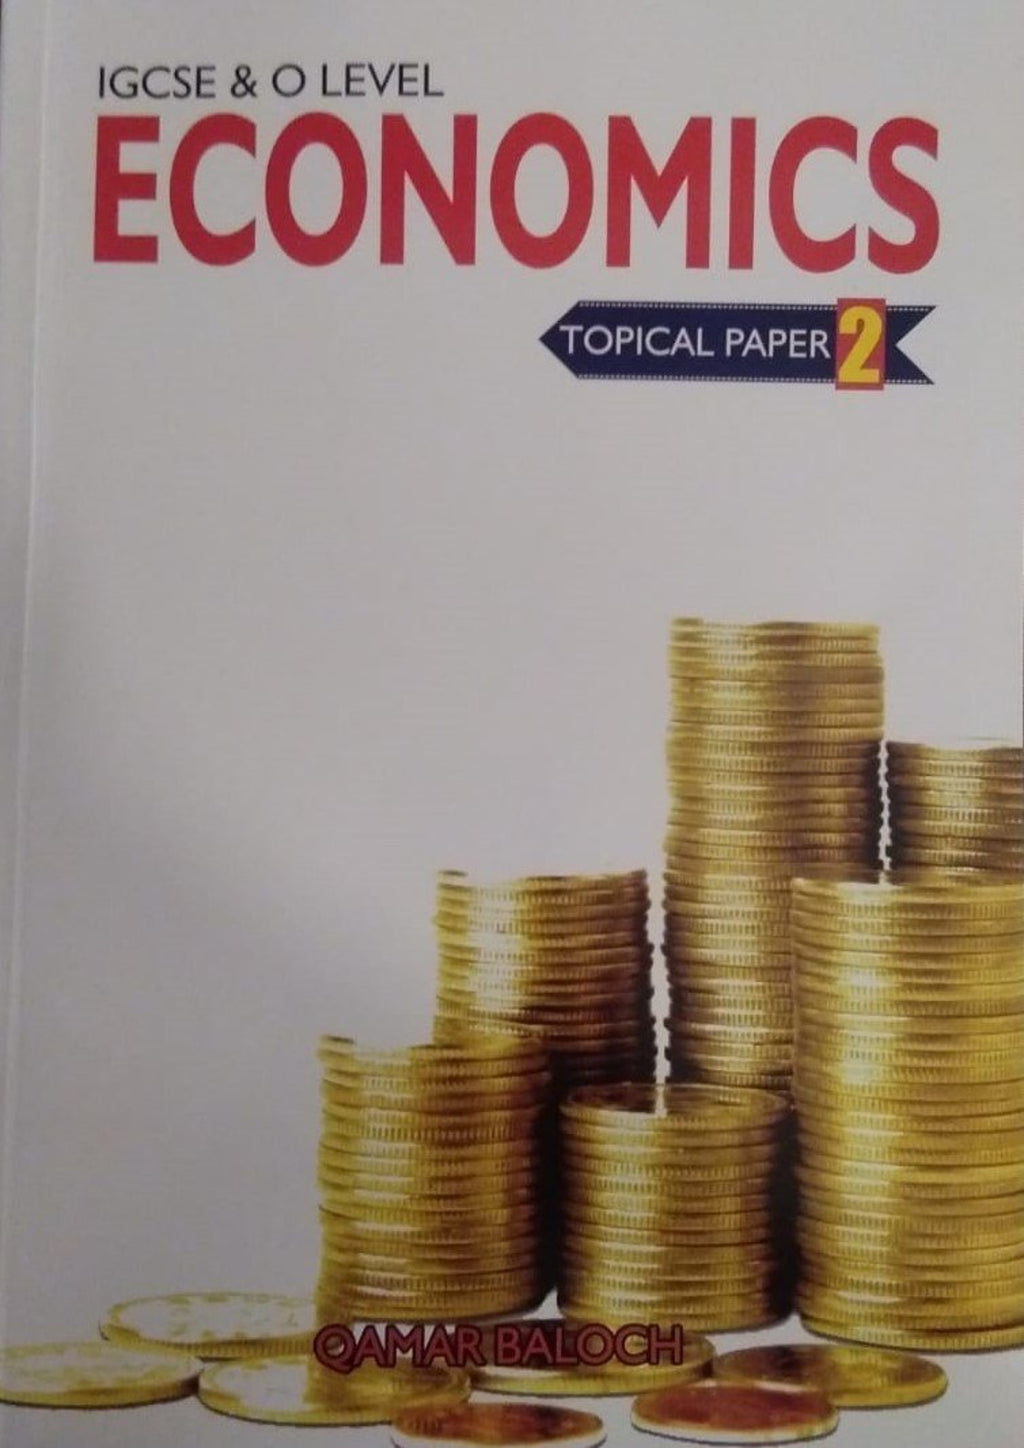 Cambridge IGCSE/O-Level Economics (0455/2281) Topical Paper 2 by Sir. Qamar Baloch